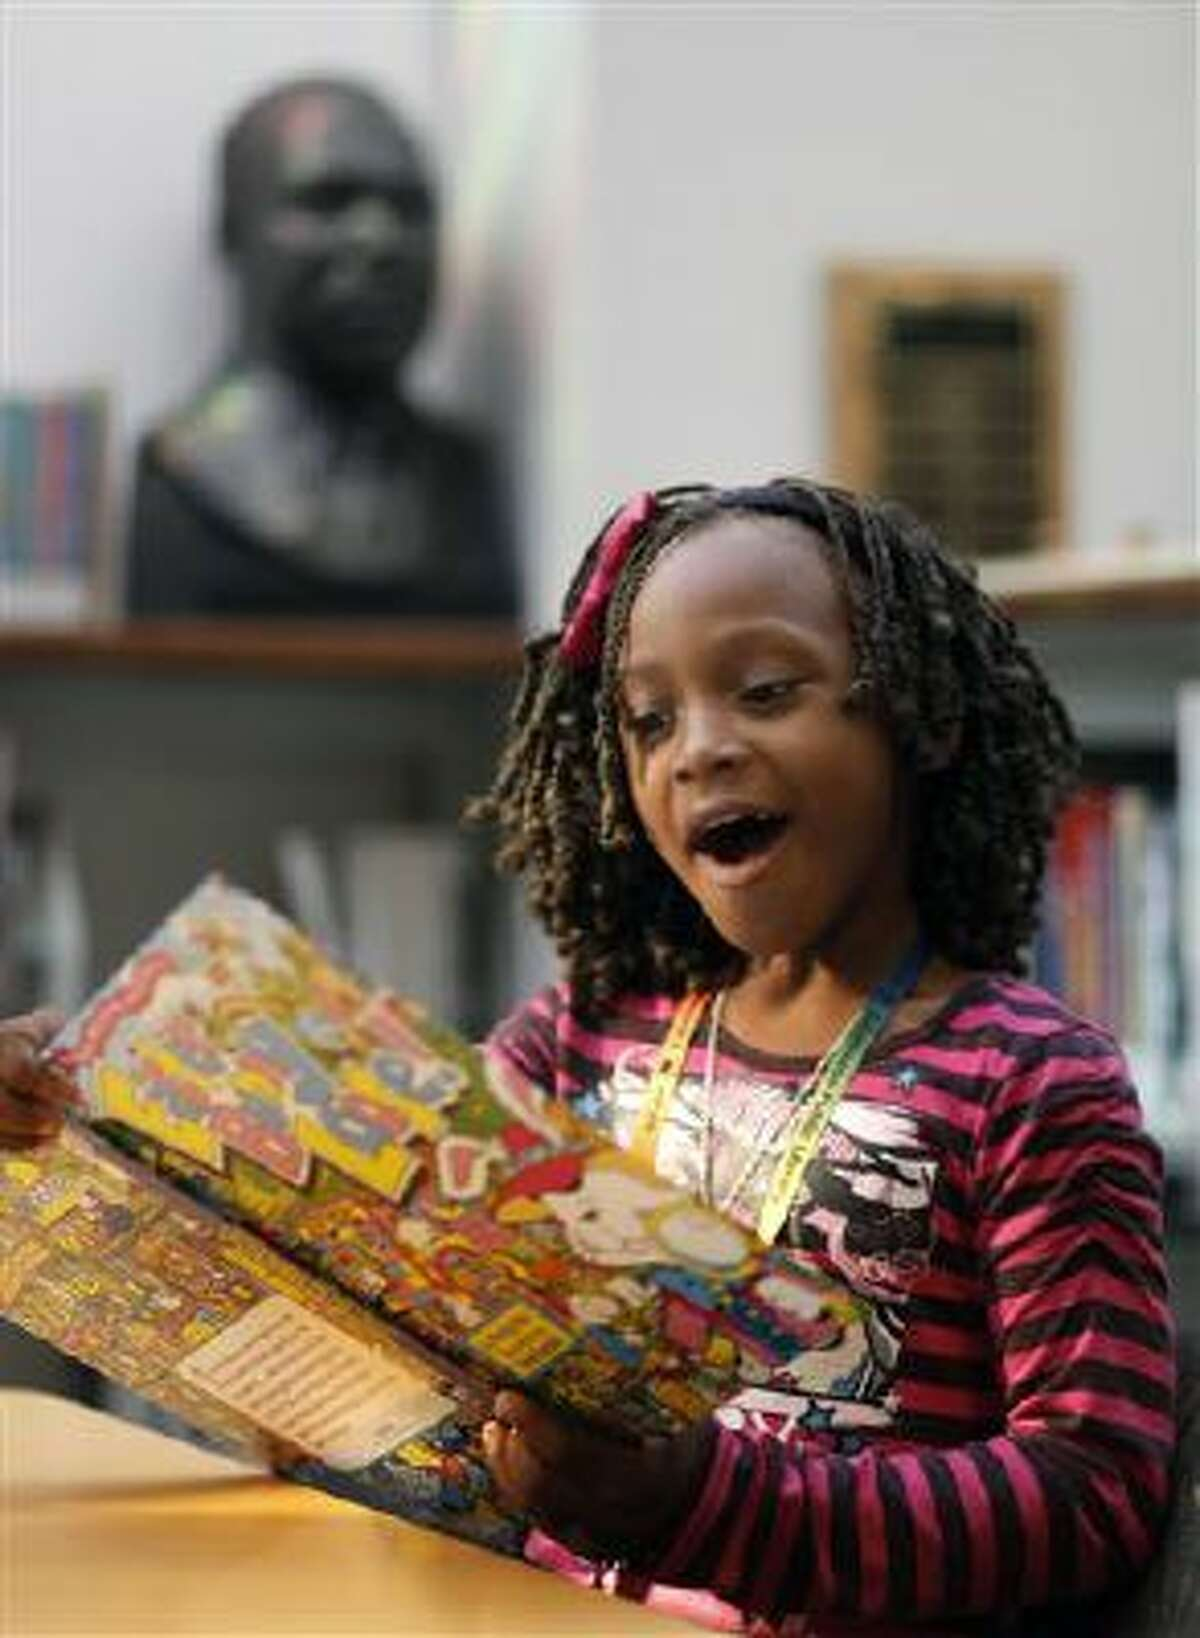 First-grade student Trevahya Whitfield looks at a book during a visit to the library in Kalamazoo, Mich. It is the third year of an ambitious partnership between Kalamazoo Public Schools and the Kalamazoo Public Library that aims to promote books and literacy. (AP Photo/Kalamazoo Gazette-MLive Media Group, Mark Bugnaski)